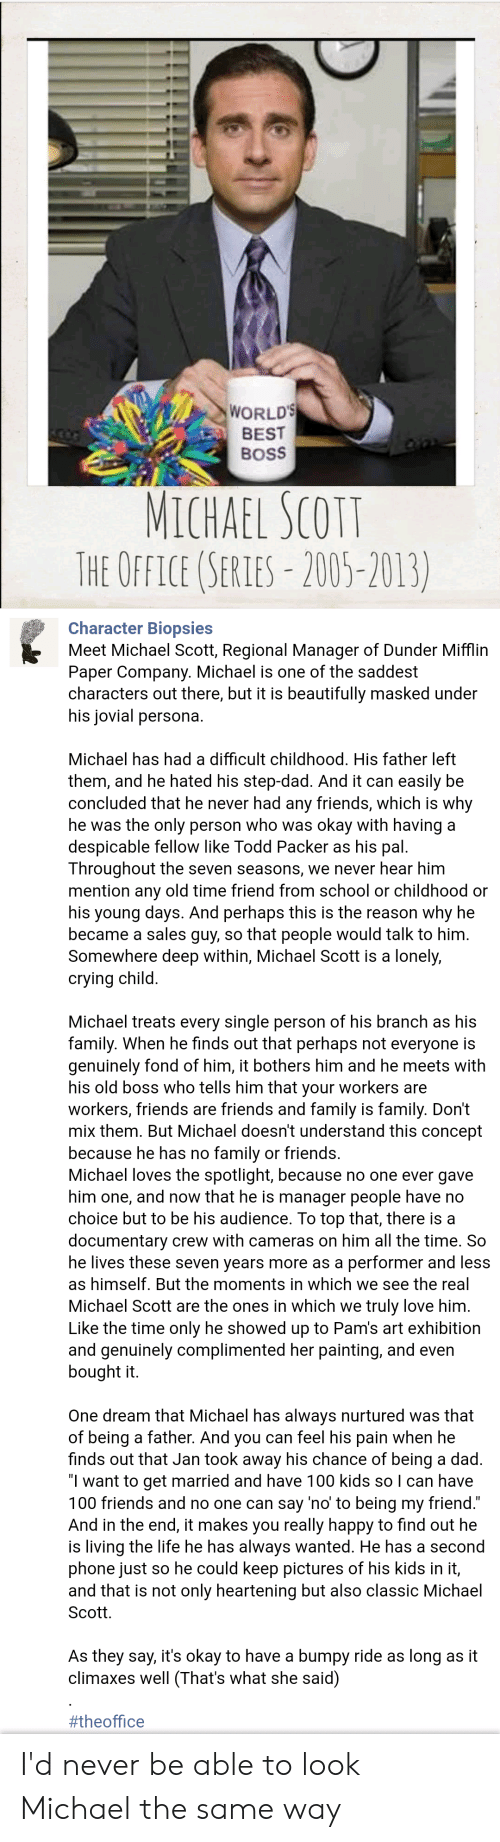 Crying, Dad, and Family: WORLD  BEST  BoSS  MICHAEL SCOTT  THE OFFICE (SERIES-2005)-2013)  Character Biopsies  Meet Michael Scott, Regional Manager of Dunder Mifflin  Paper Company. Michael is one of the saddest  aracters out there, but it is beautifully masked under  his jovial persona  Michael has had a difficult childhood. His father left  them, and he hated his step-dad. And it can easily b  concluded that he never had any friends, which is why  e was the only person who was okay with havinga  espicable fellow like Todd Packer as his pal.  Throughout the seven seasons, we never hear him  mention any old time friend from school or childhood or  his young days. And perhaps this is the reason why he  became a sales guy, so that people would talk to him  ewhere deep within, Michael Scott is a lonely  crying child  chael treats every single person of his branch as hi  family. When he finds out that perhaps not everyone is  genuinely fond of him, it bothers him and he meets with  his old boss who tells him that your workers are  workers, friends are friends and family is family. Don't  mix them. But Michael doesn't understand  because he has no family or friends.  Michael loves the spotlight, because no one ever gave  him one, and now that he is manager people have no  choice but to be his audience. To top that, there is a  documentary crew with cameras on him all the time. So  he lives these seven years more as a performer and less  as himself. But the moments in which we see the real  Michael Scott are the ones in which we truly love him  Like the time only he showed up to Pam's art exhibition  this concept  nely complimented her painting, and even  bought it  One dream that Michael has always nurtured was that  g a father. And you can feel his pain when he  finds out that Jan took away his chance of being a dad  I want to get married and have 100 kids so I can have  100 friends and no one can say 'no to being my friend  And in the end, it makes you really happy to find out he  is living the life he has always wanted. He has a second  phone just so he could keep pictures of his kids in it,  and that is not only heartening but also classic Michael  Scott  As they say, it's okay to have a bumpy ride as long as it  climaxes well (That's what she said)  I'd never be able to look Michael the same way